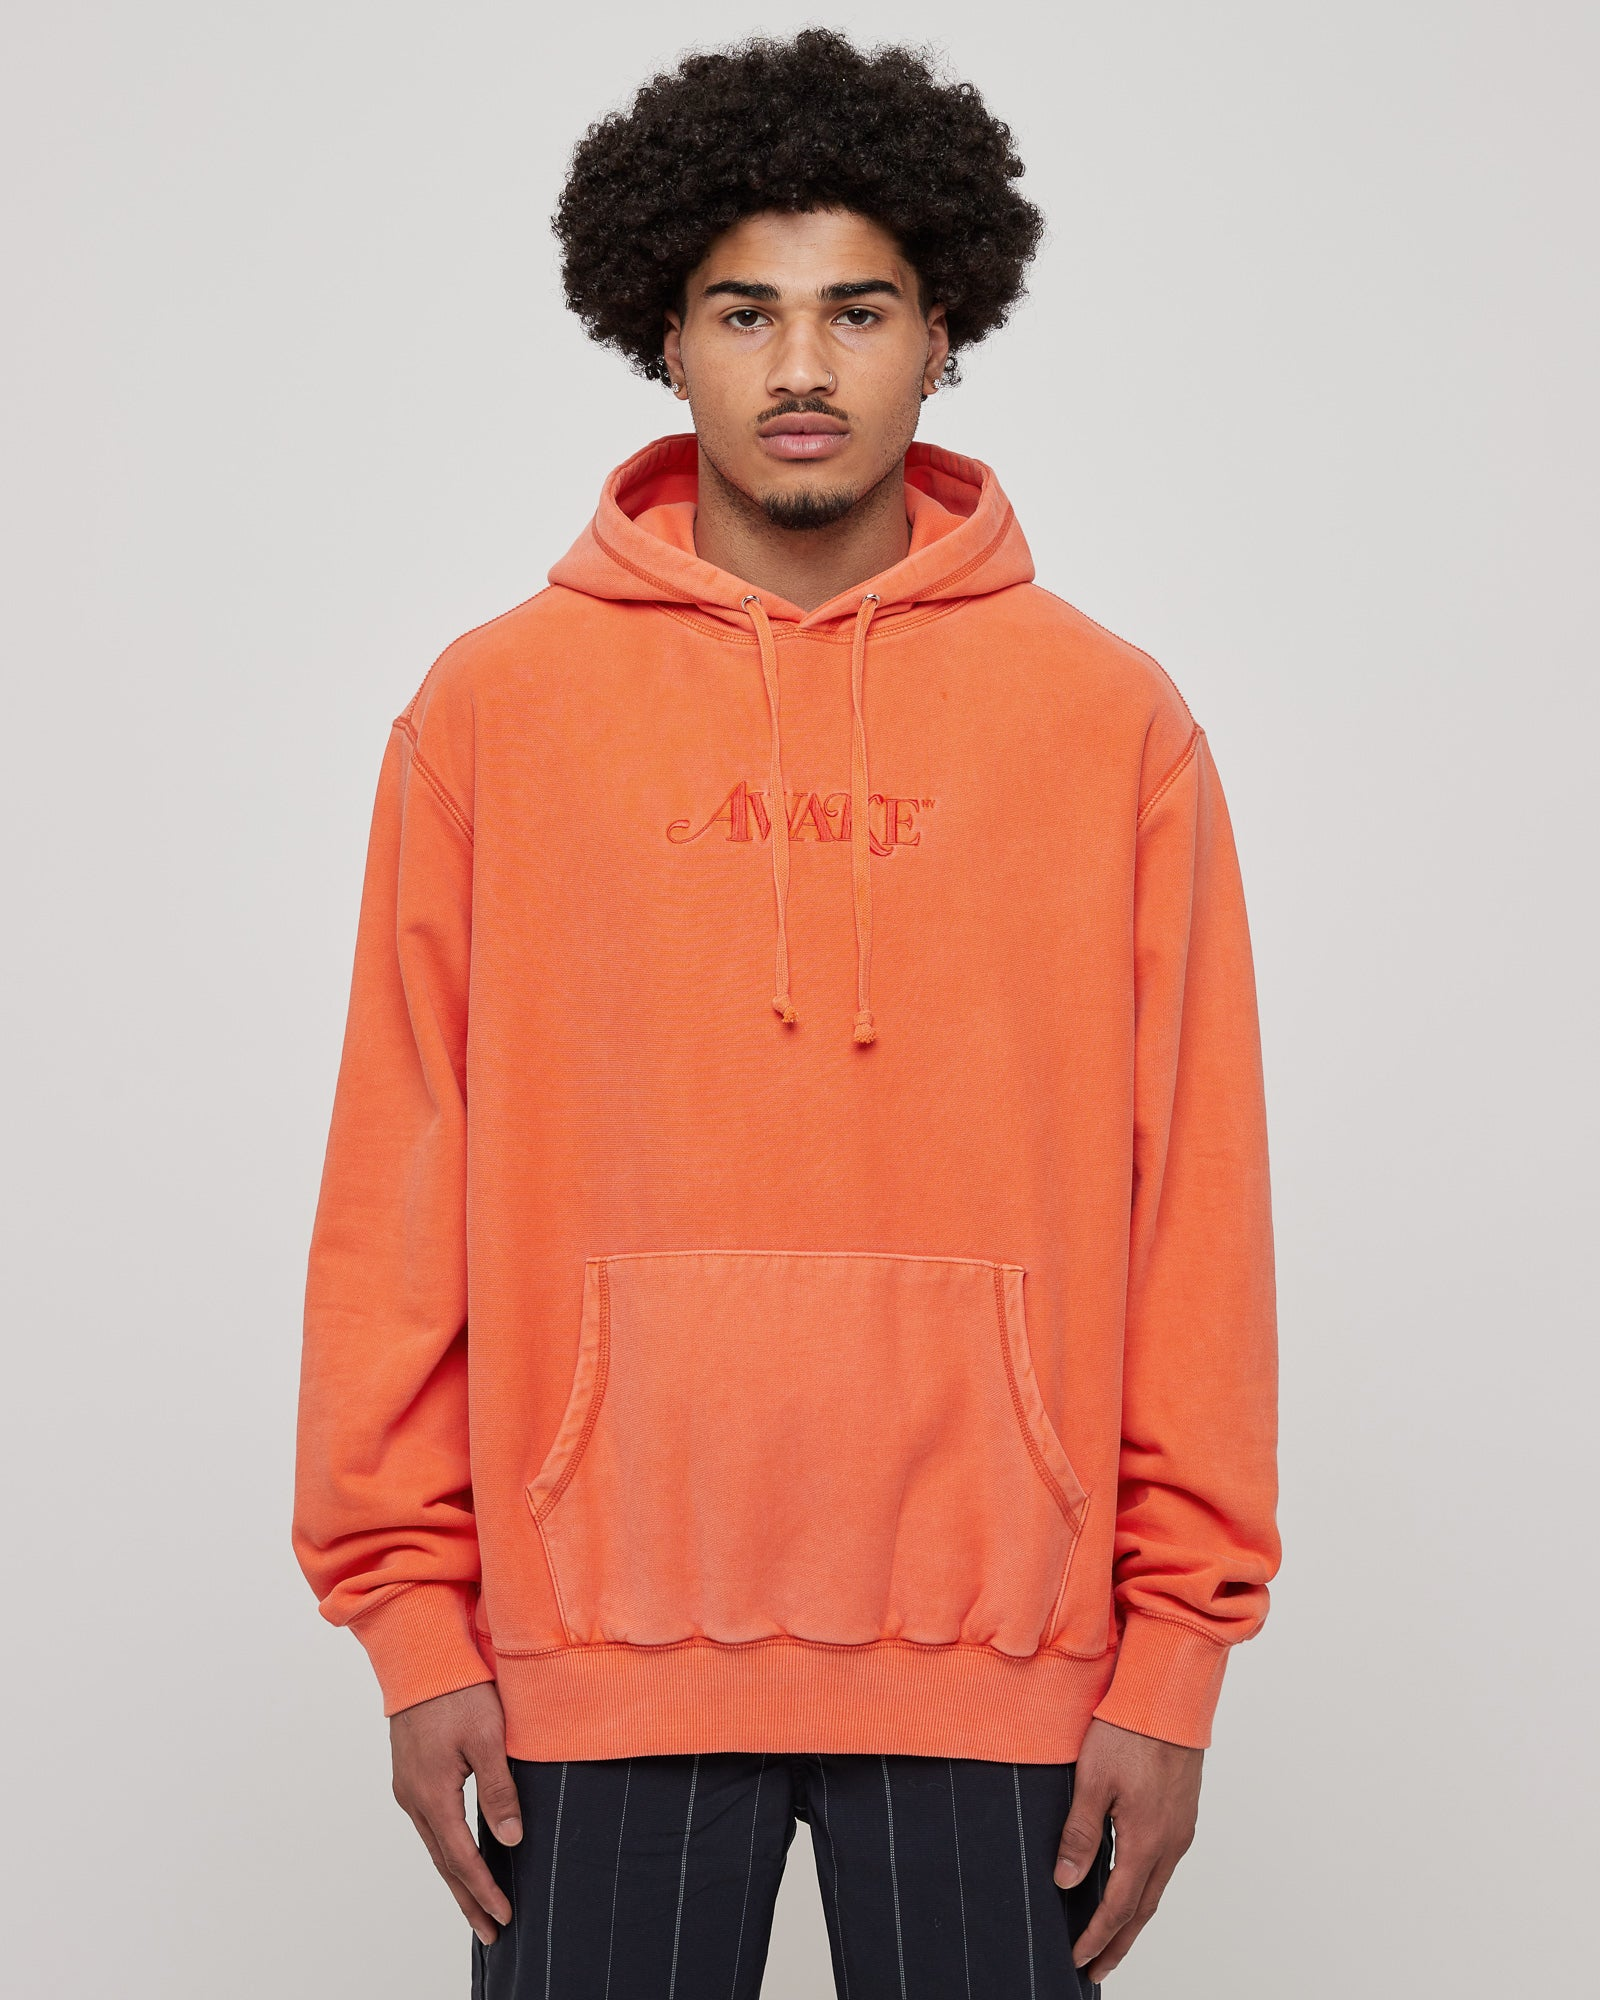 Classic Logo Hoodie in Red Orange